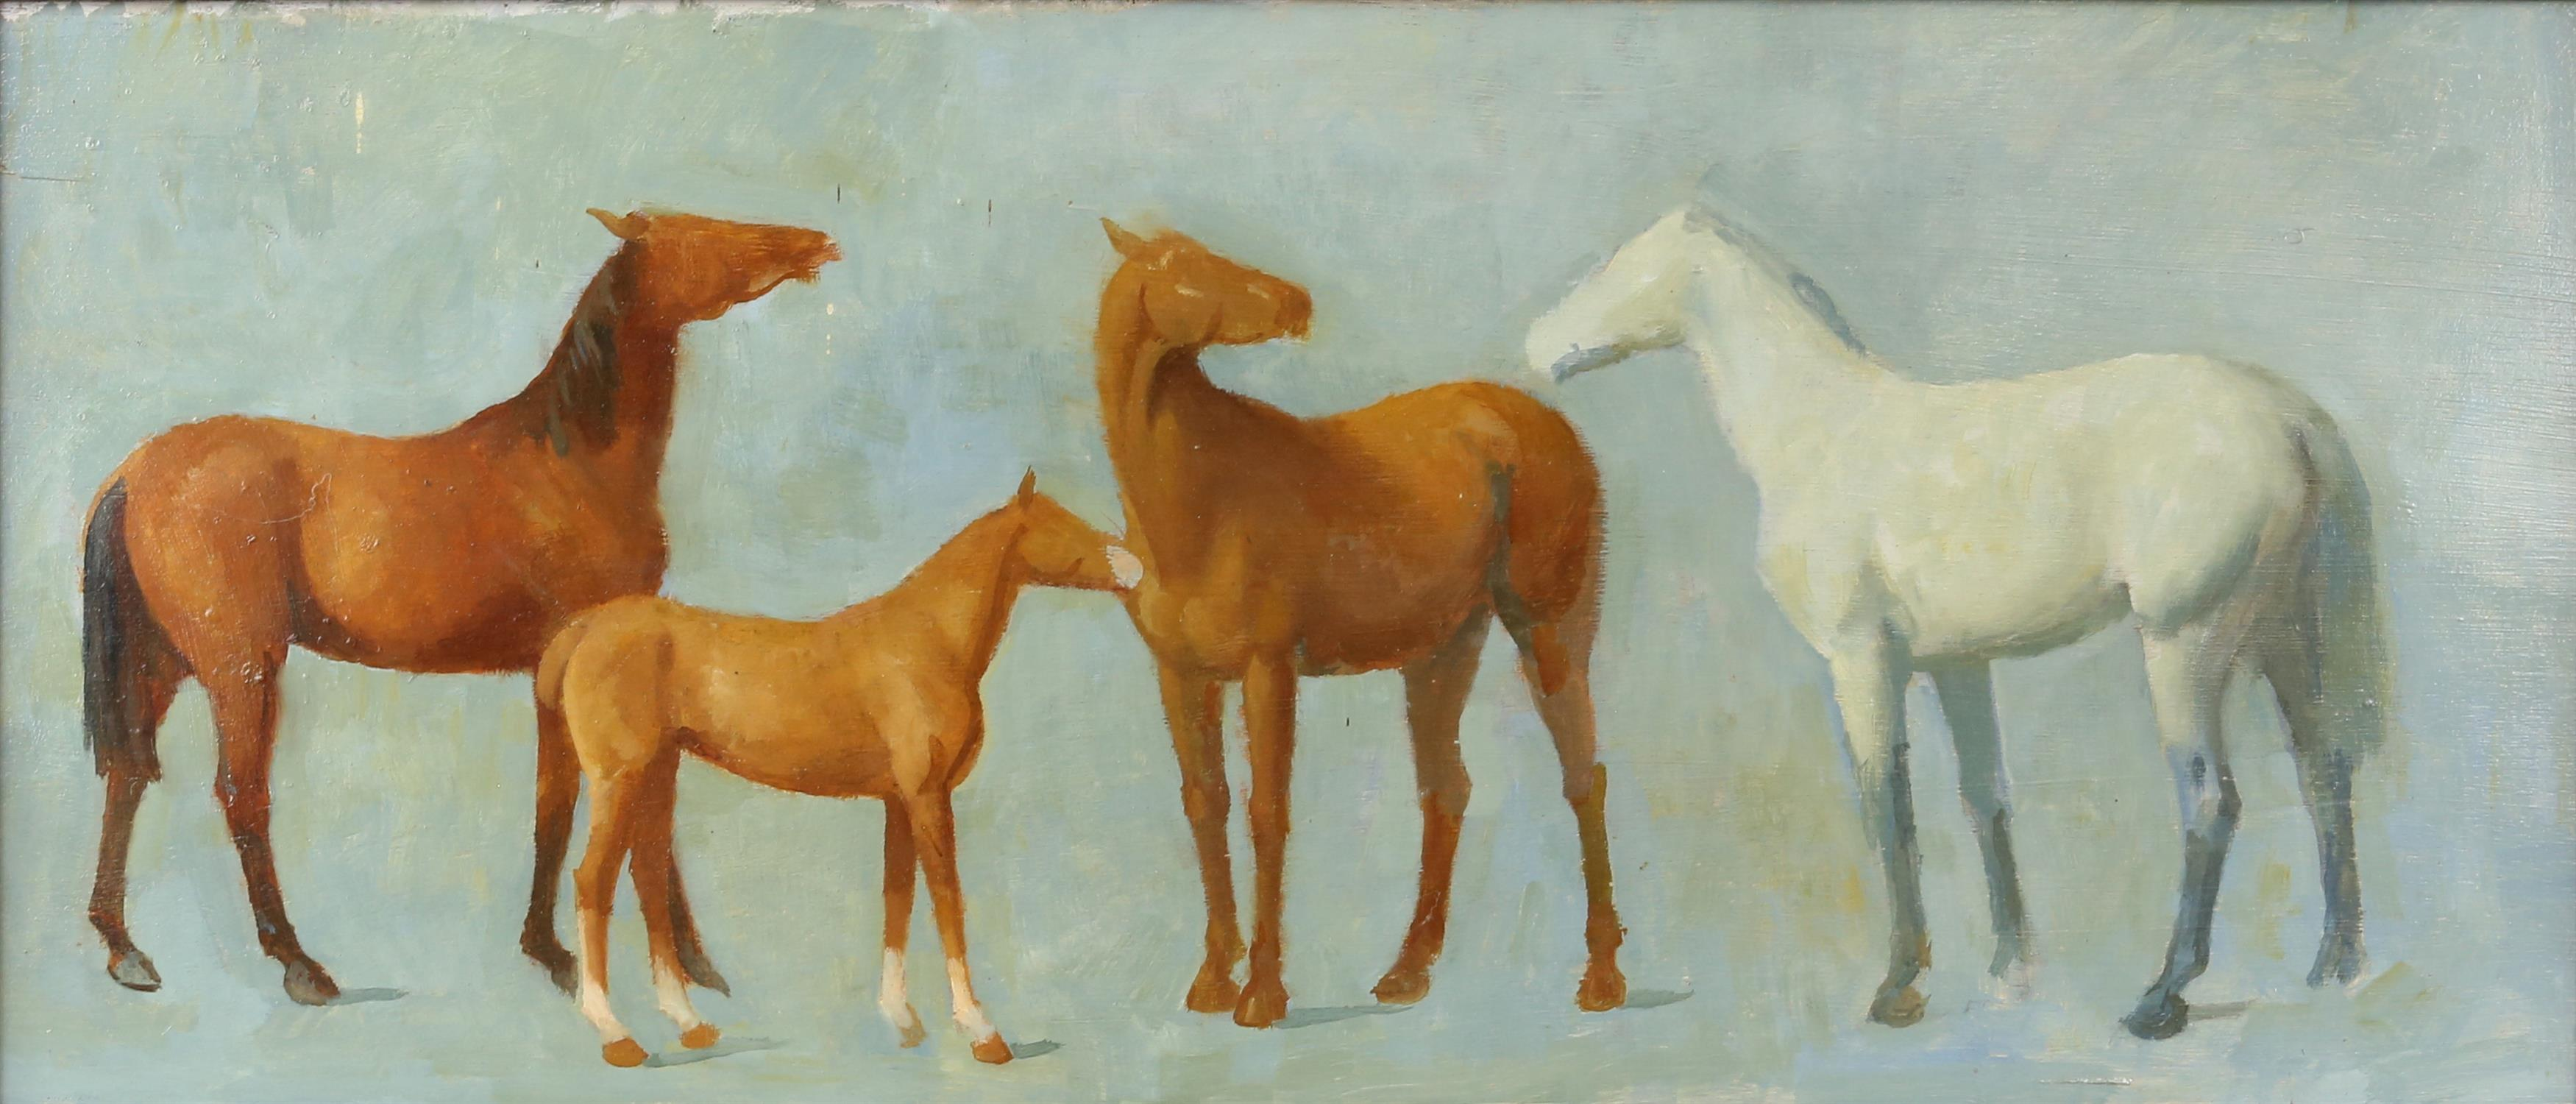 § Lionel Ellis (1903-1988). Four horses on a blue ground. Oil on board, unsigned. 34 x 69cms.